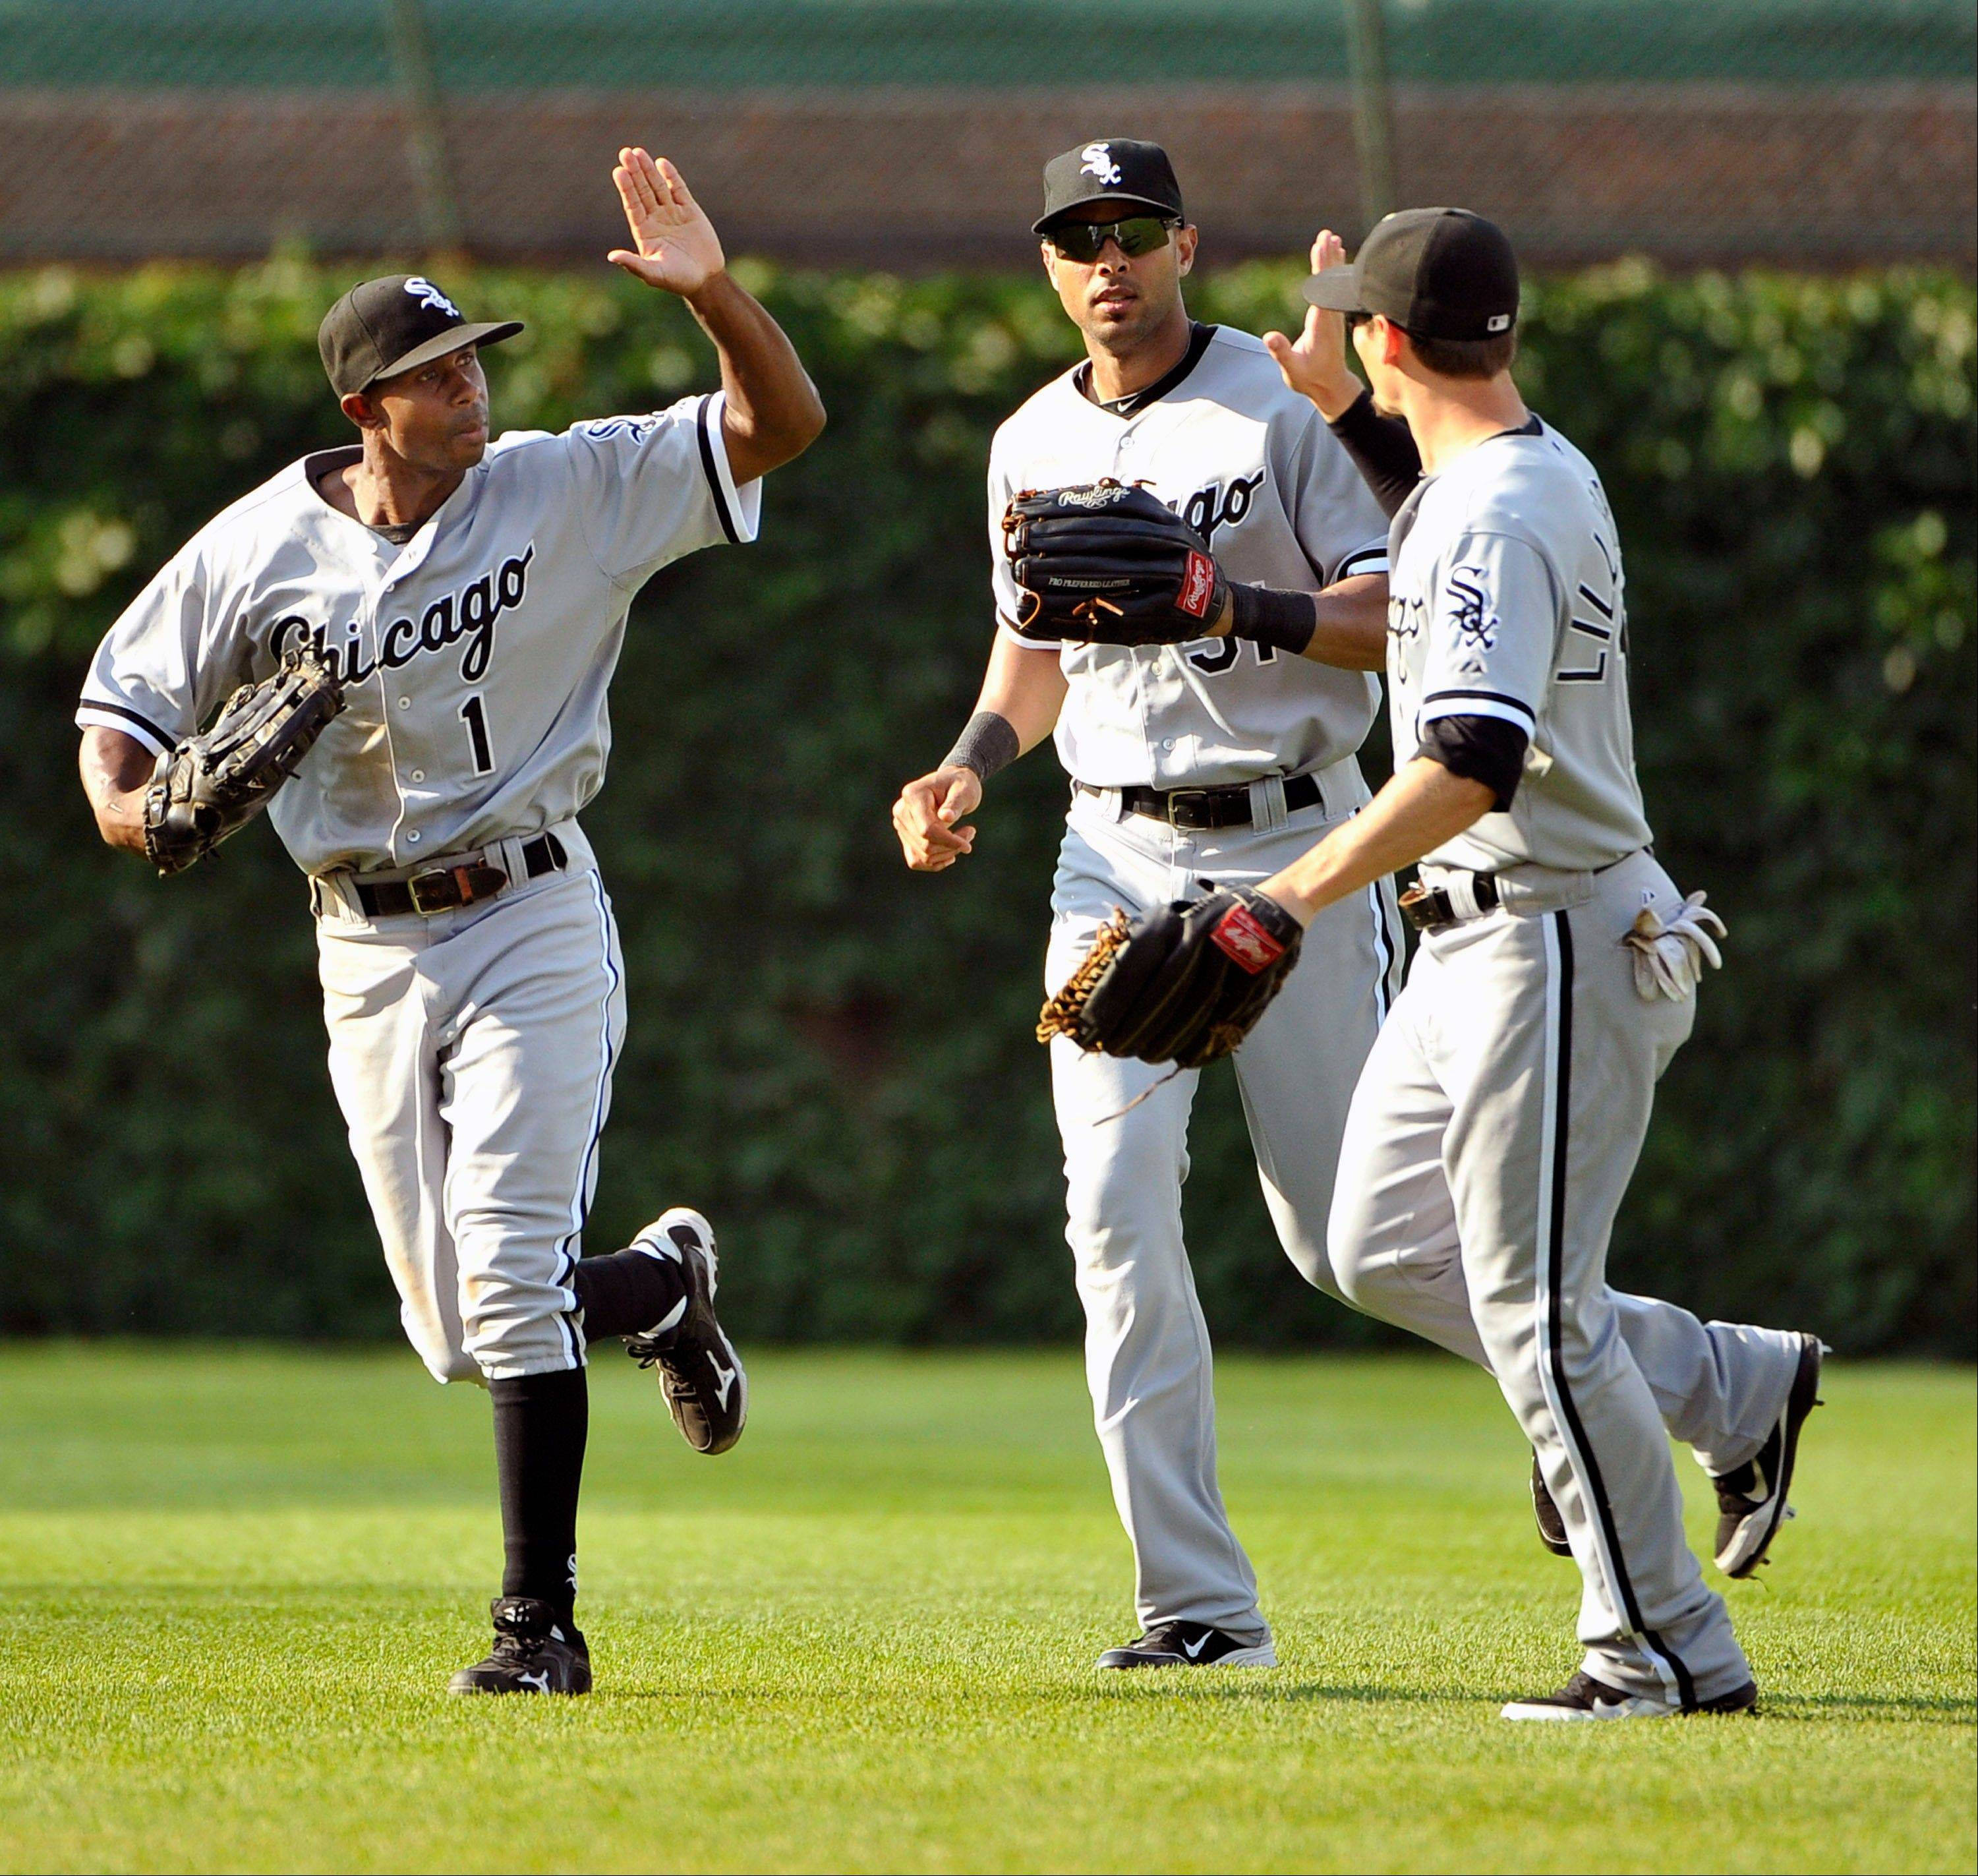 White Sox outfielders Juan Pierre, from left, Alex Rios and Brent Lillibridge celebrate after Saturday's victory at Wrigley Field.